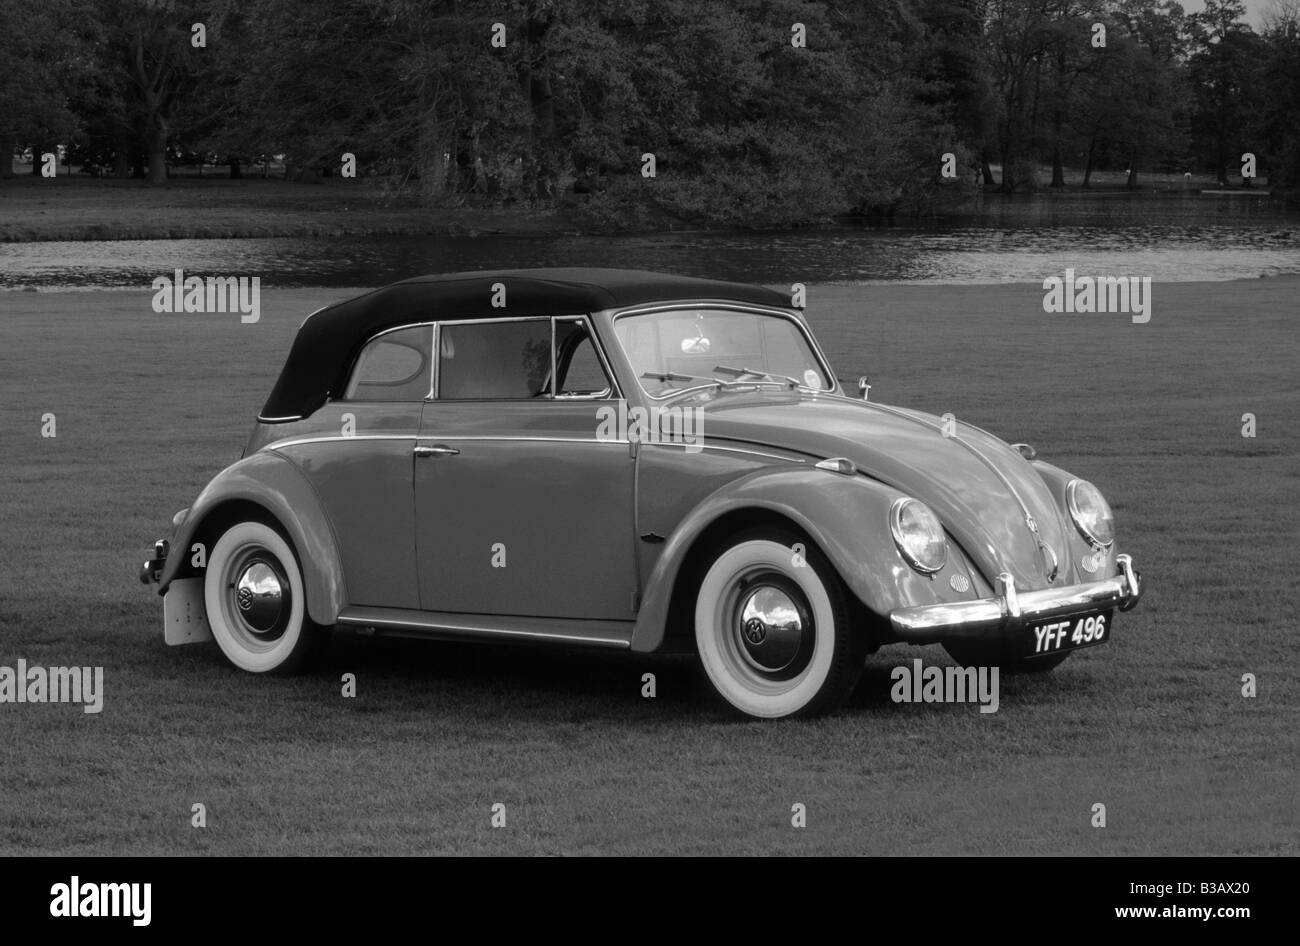 Volkswagen Beetle Cabriolet of 1961. Stock Photo